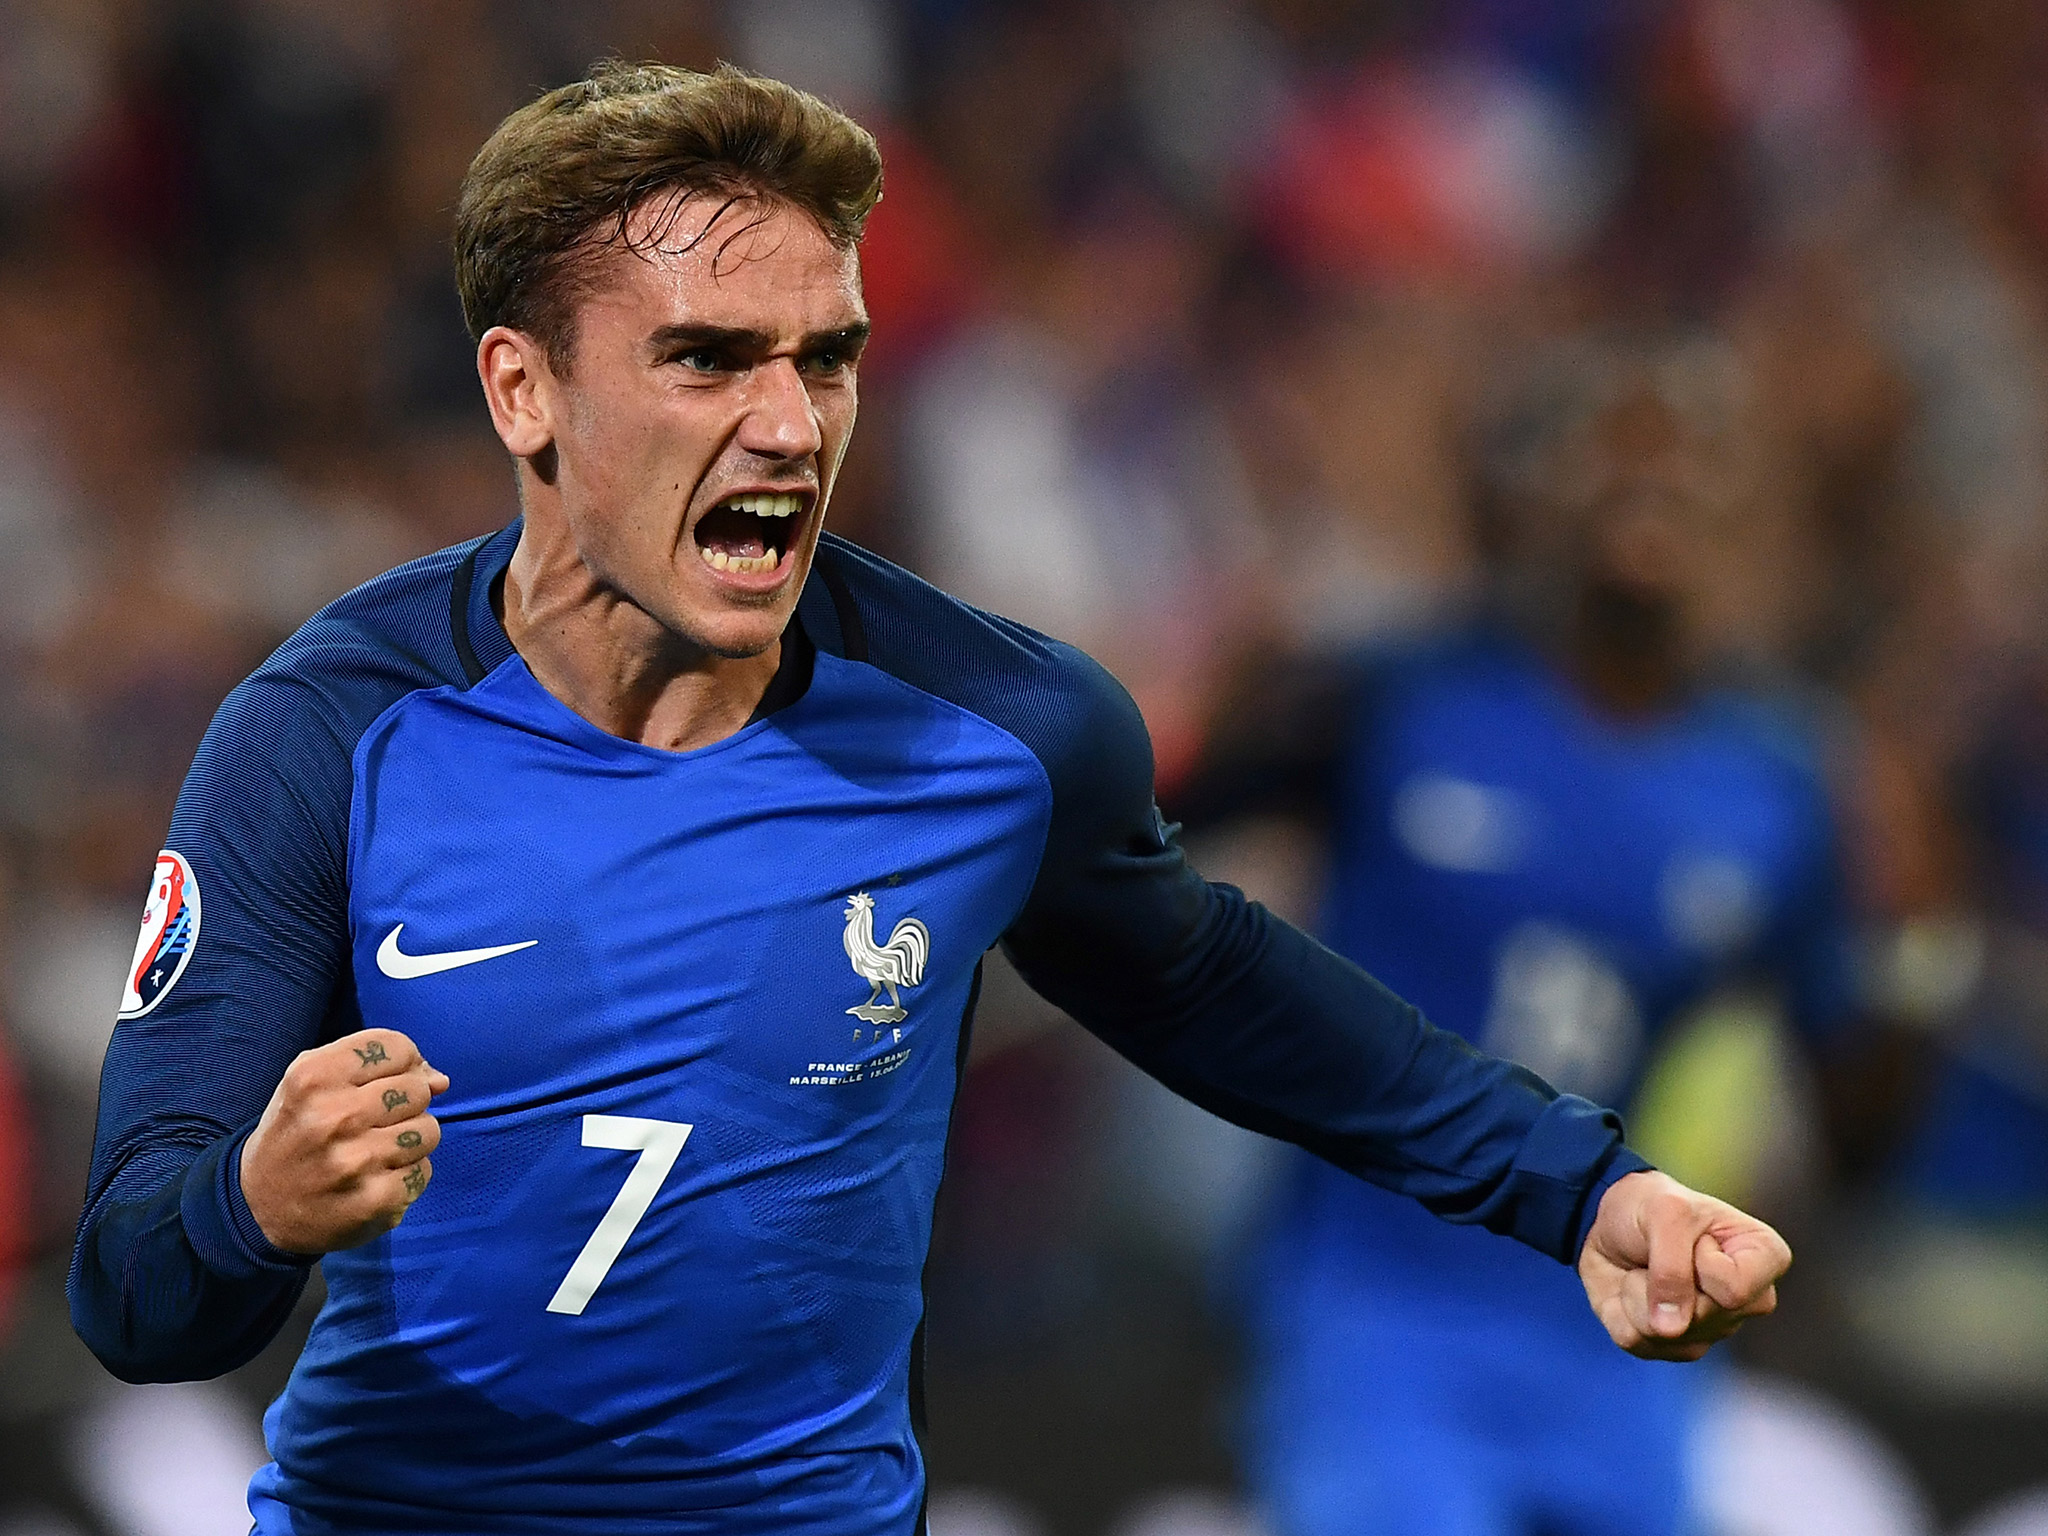 Football Wallpapers Hd For Android Antoine Griezmann Hd Wallpapers